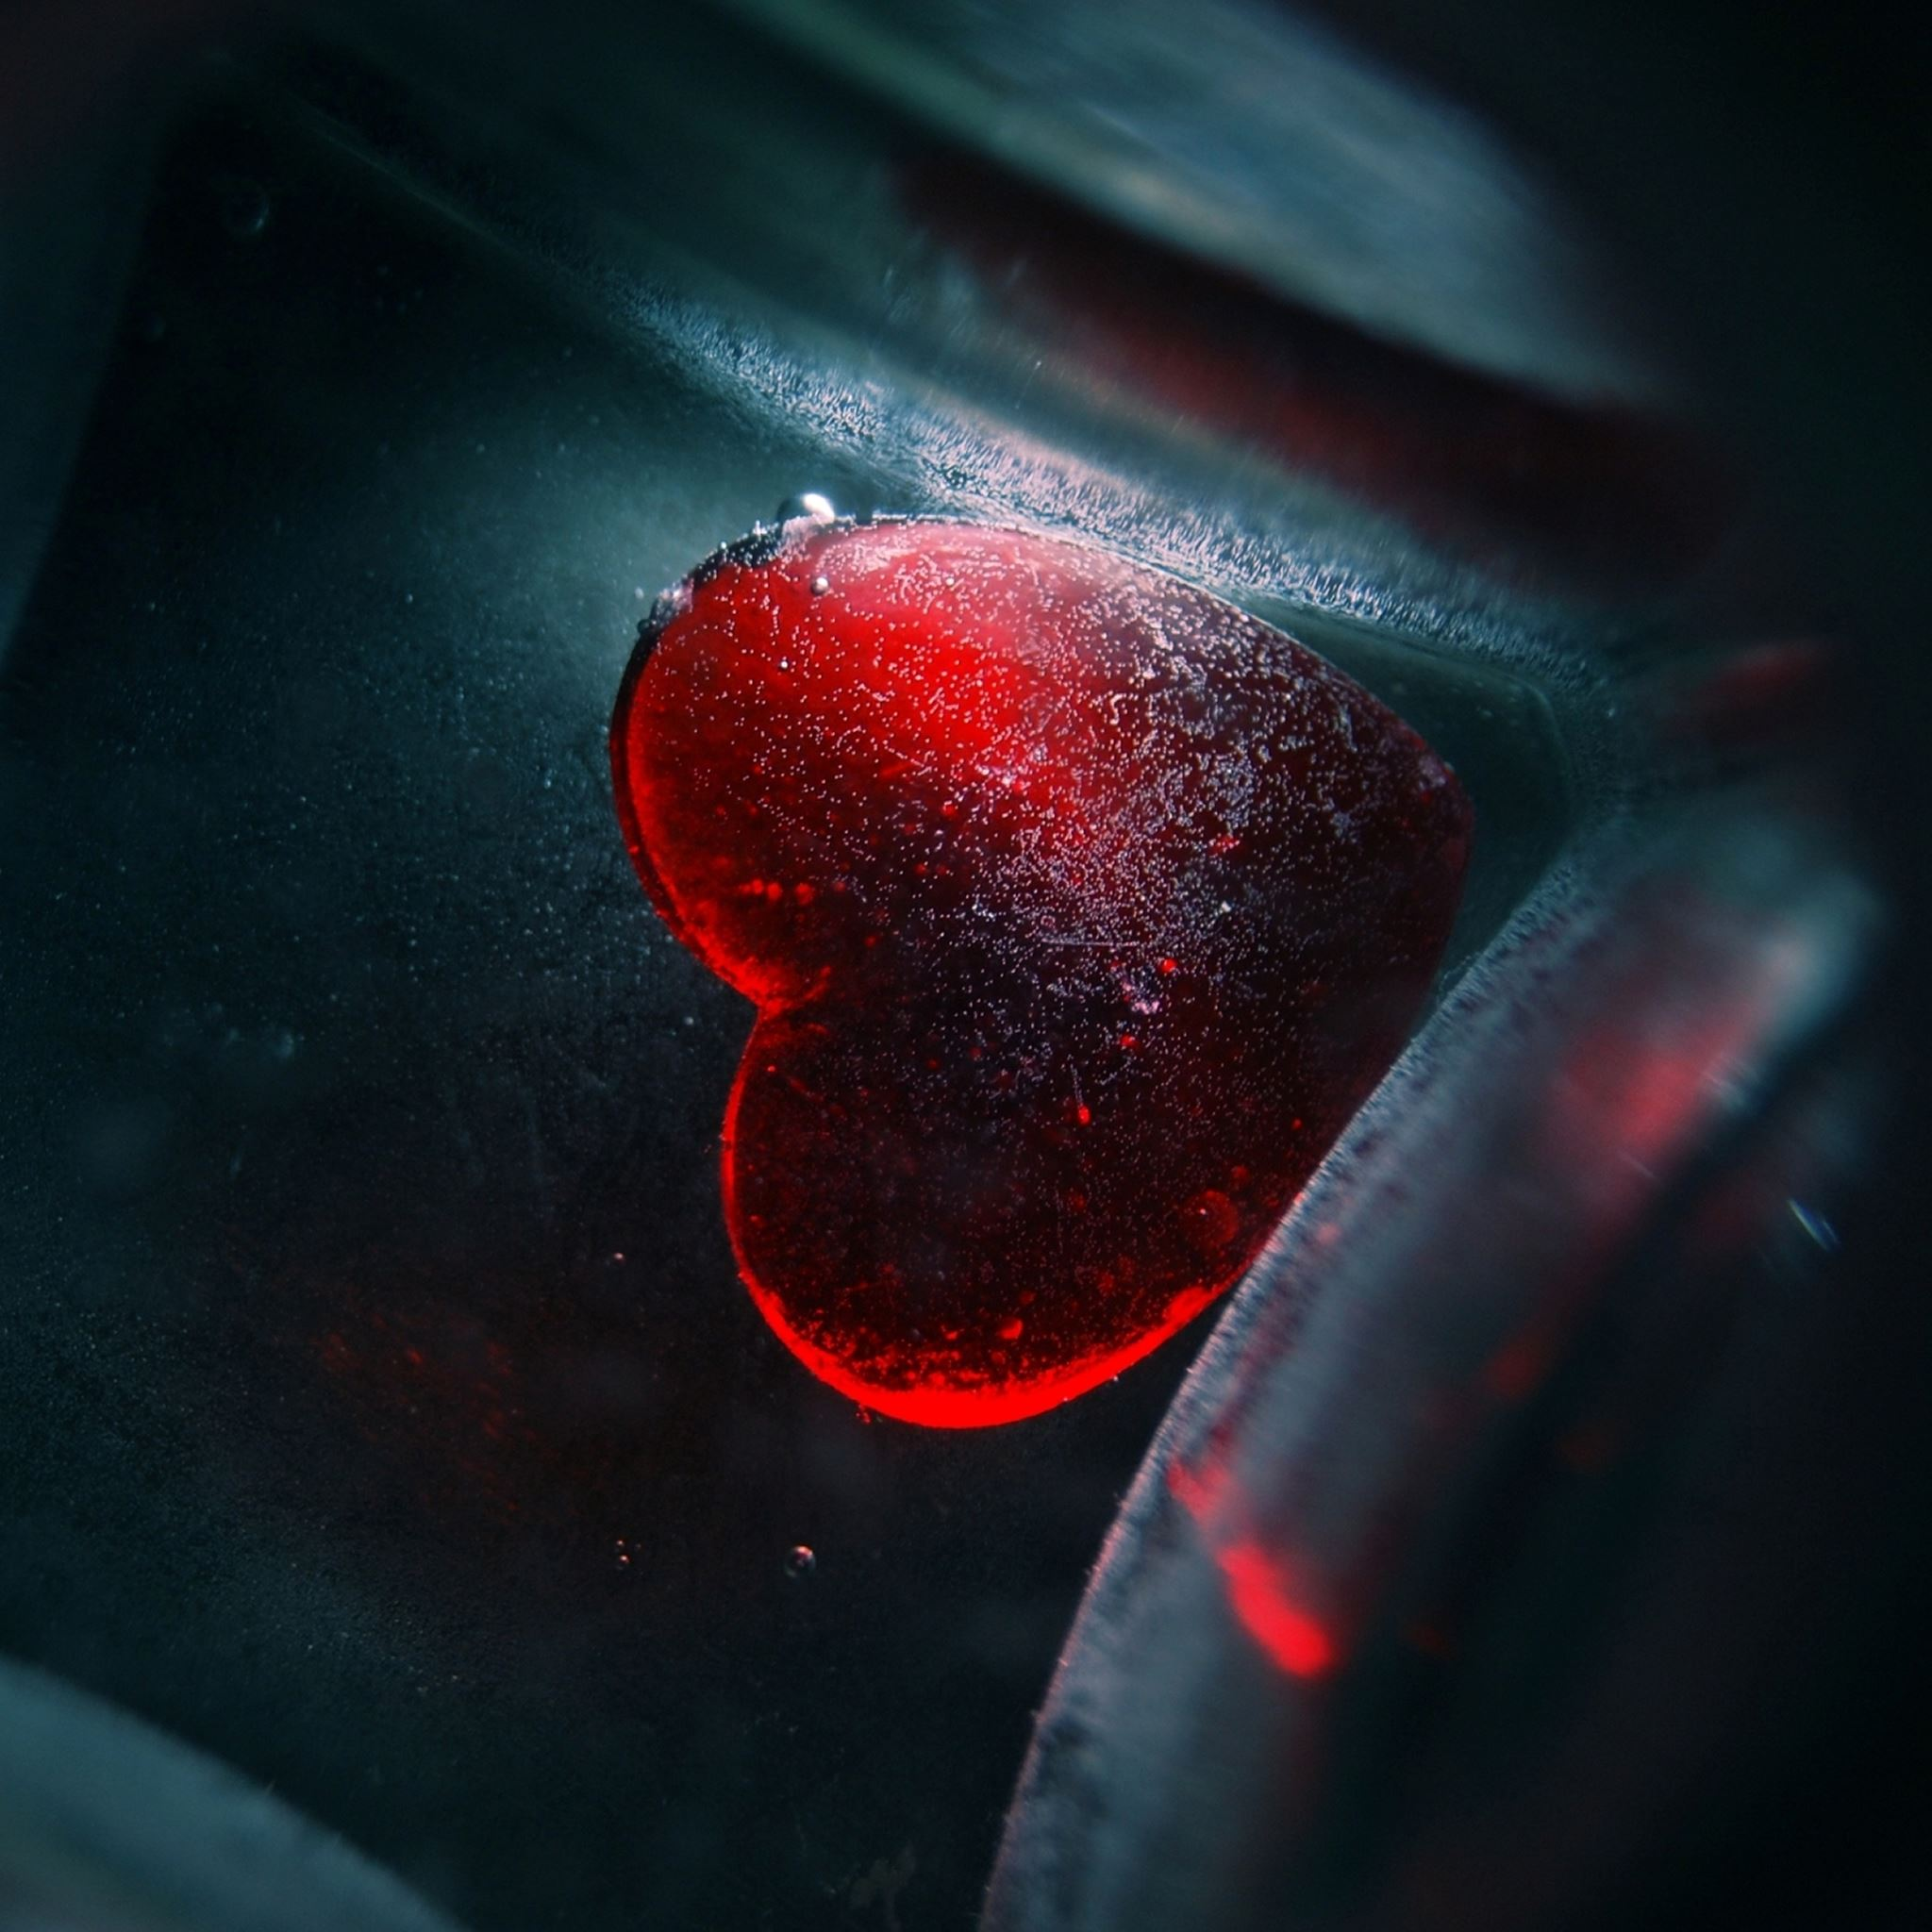 Red Heart Underwater iPad Air wallpaper